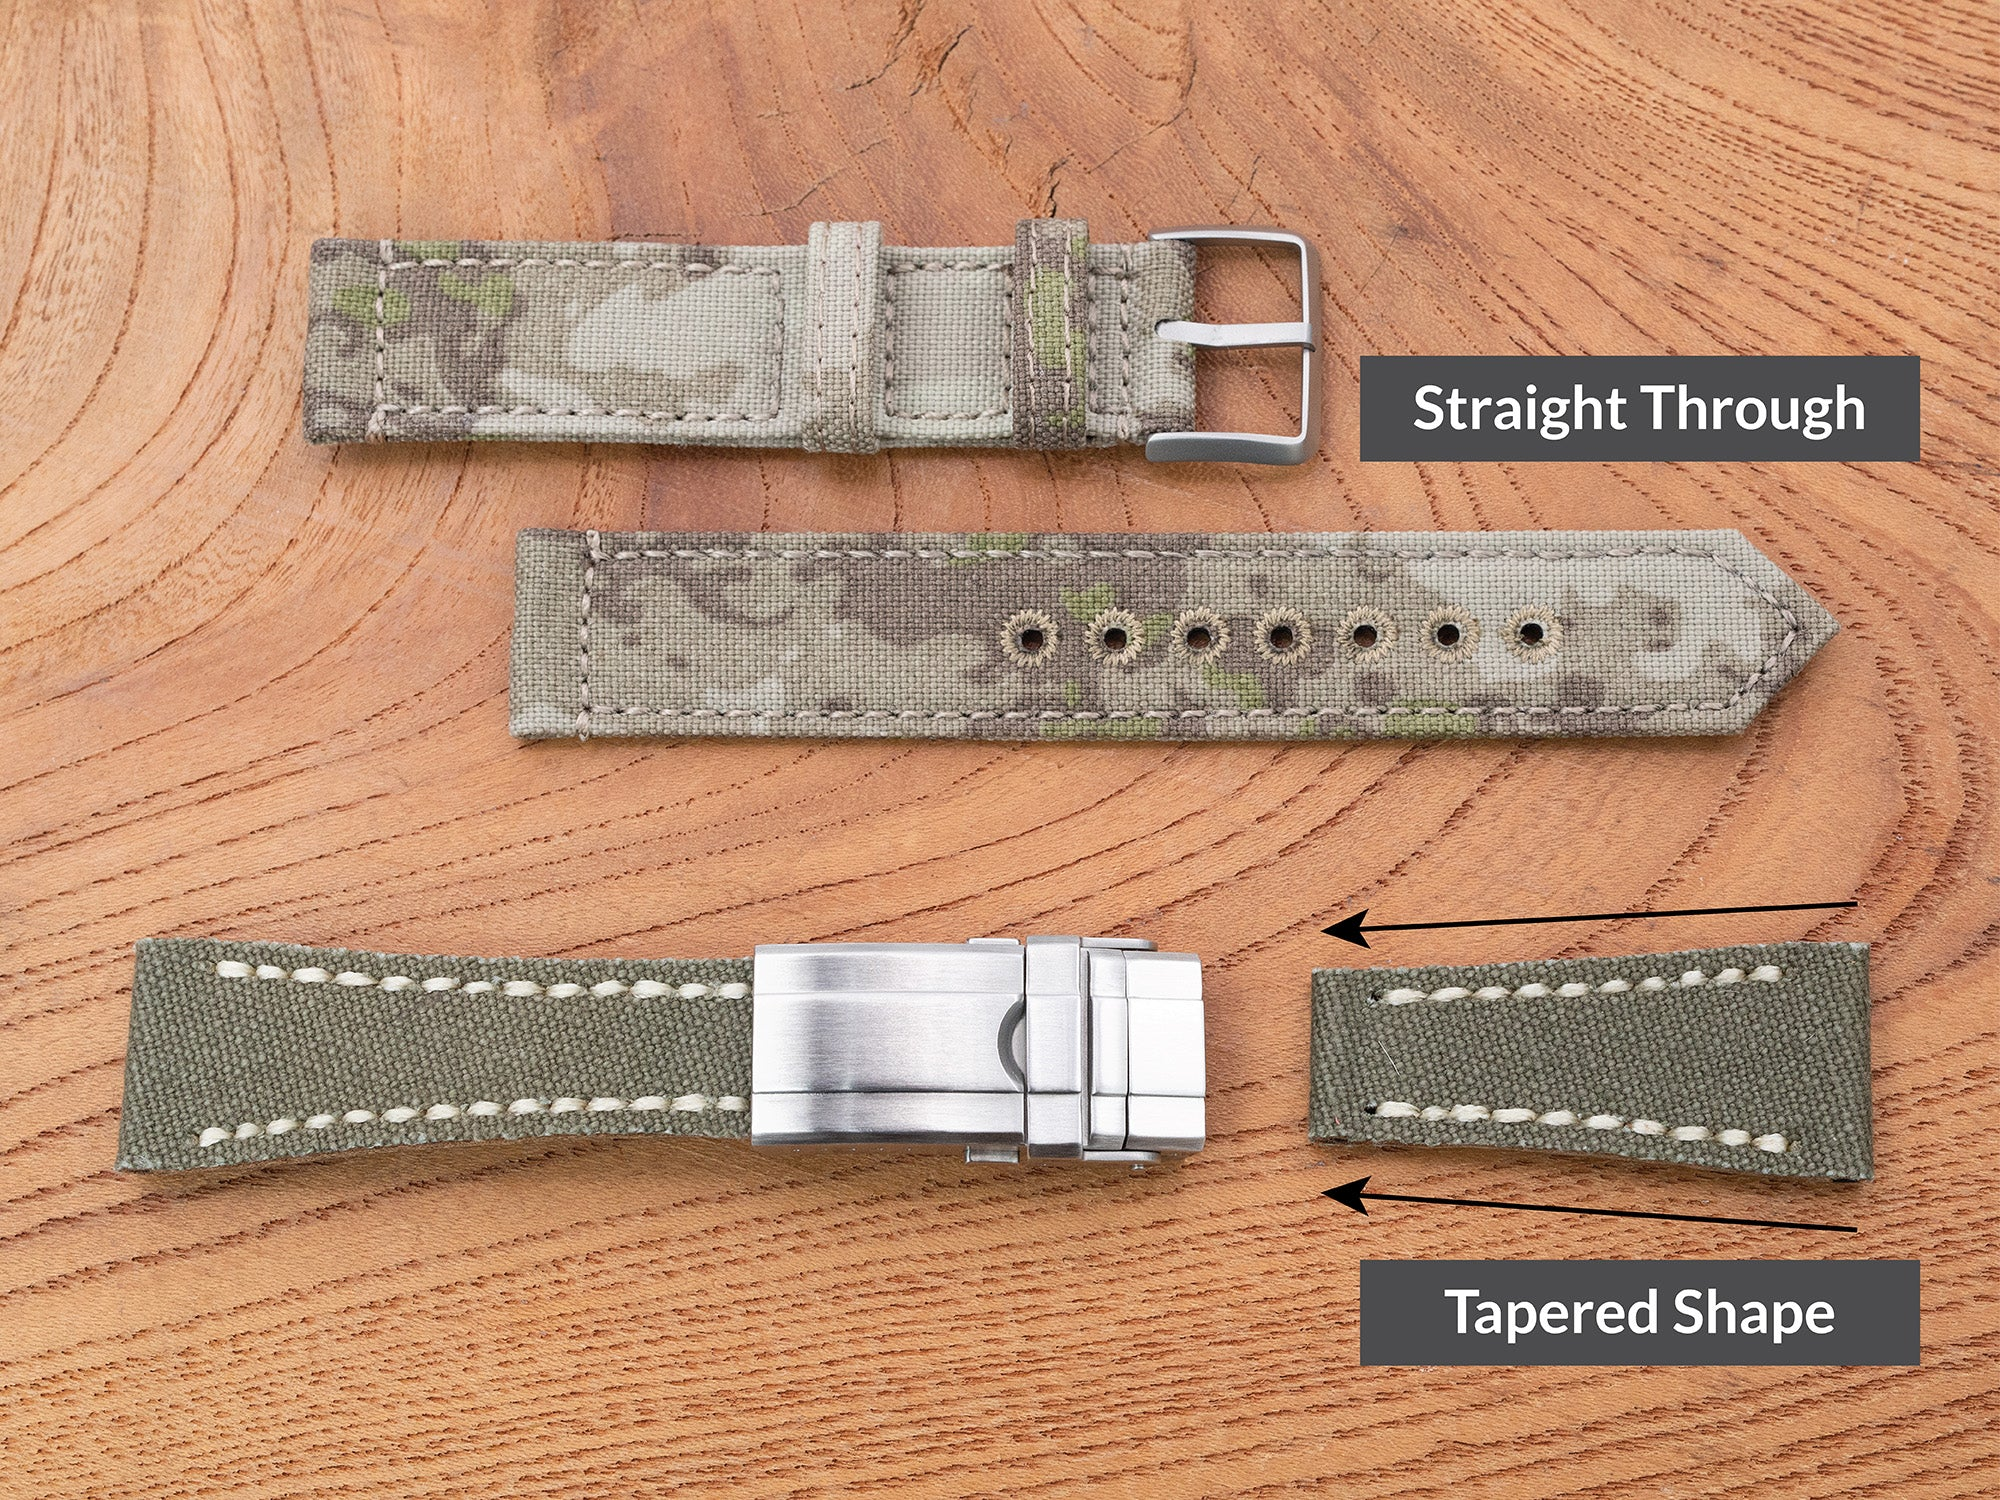 strapcode-watch-bands-Watch-Band-Terminology-C-02